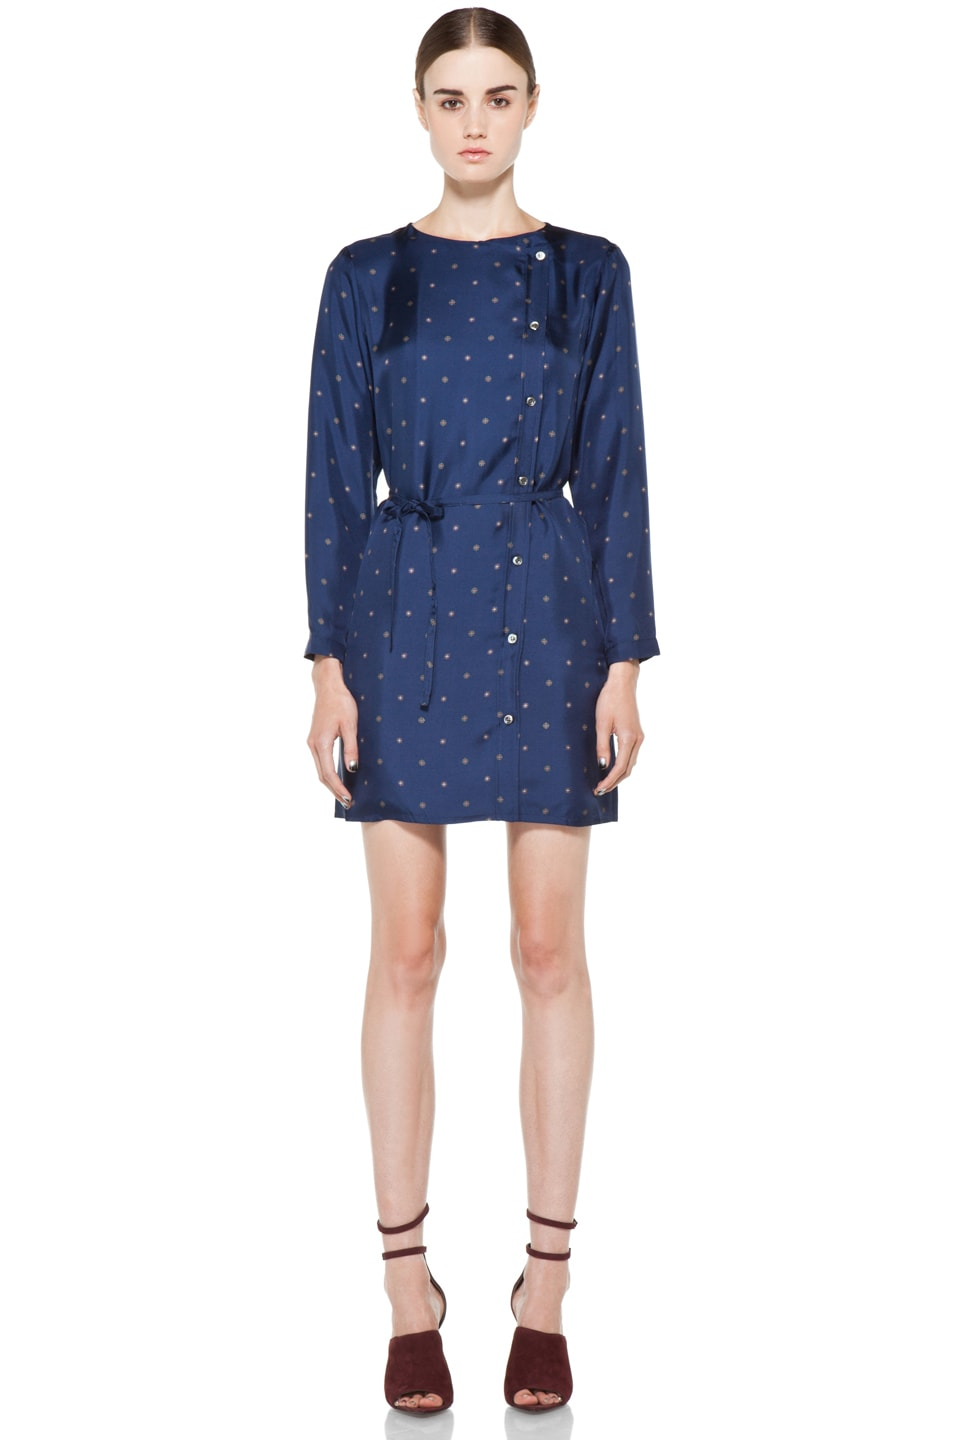 Image 1 of A.P.C. Twill de Soire Imprime Dress in Marine